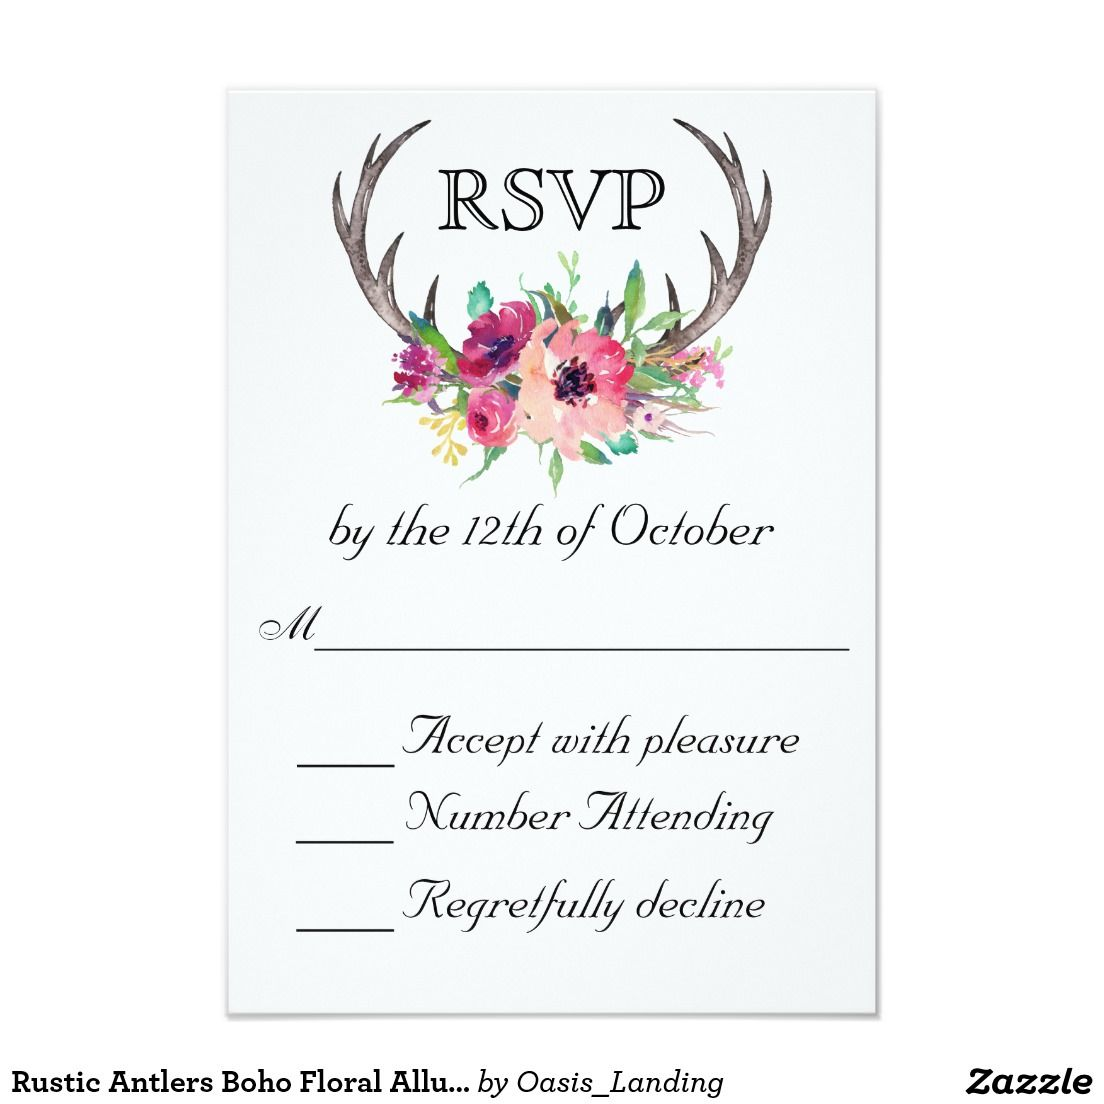 rustic antlers boho floral allure wedding card with enchanting